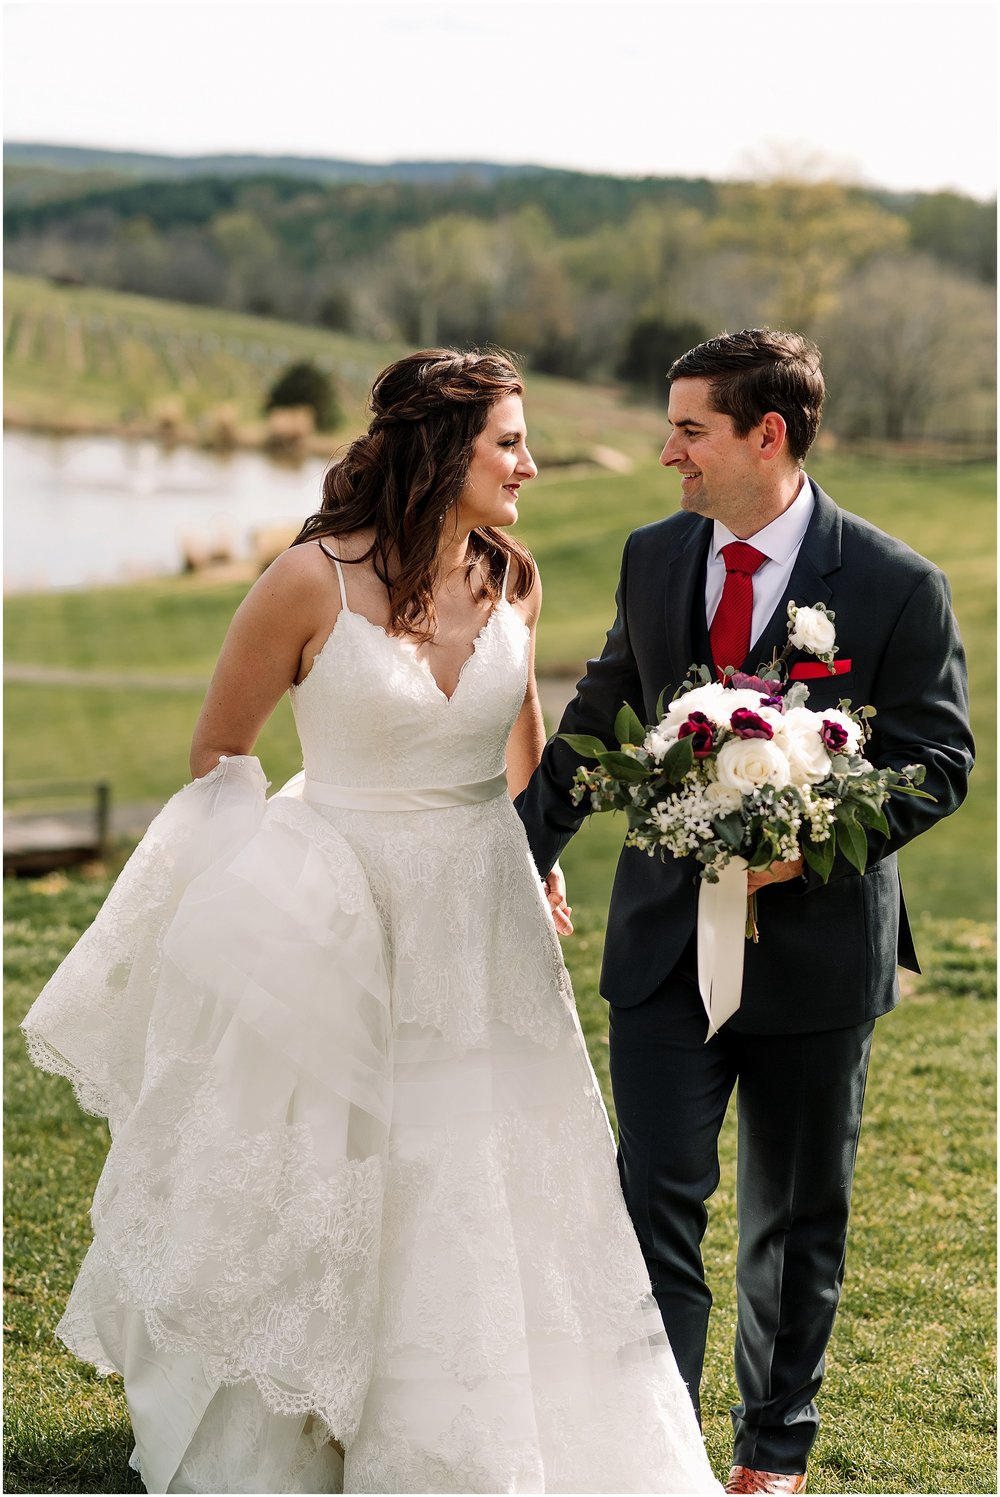 Hannah Leigh Photography Stone Tower Winery Wedding Leesburg VA_7701.jpg